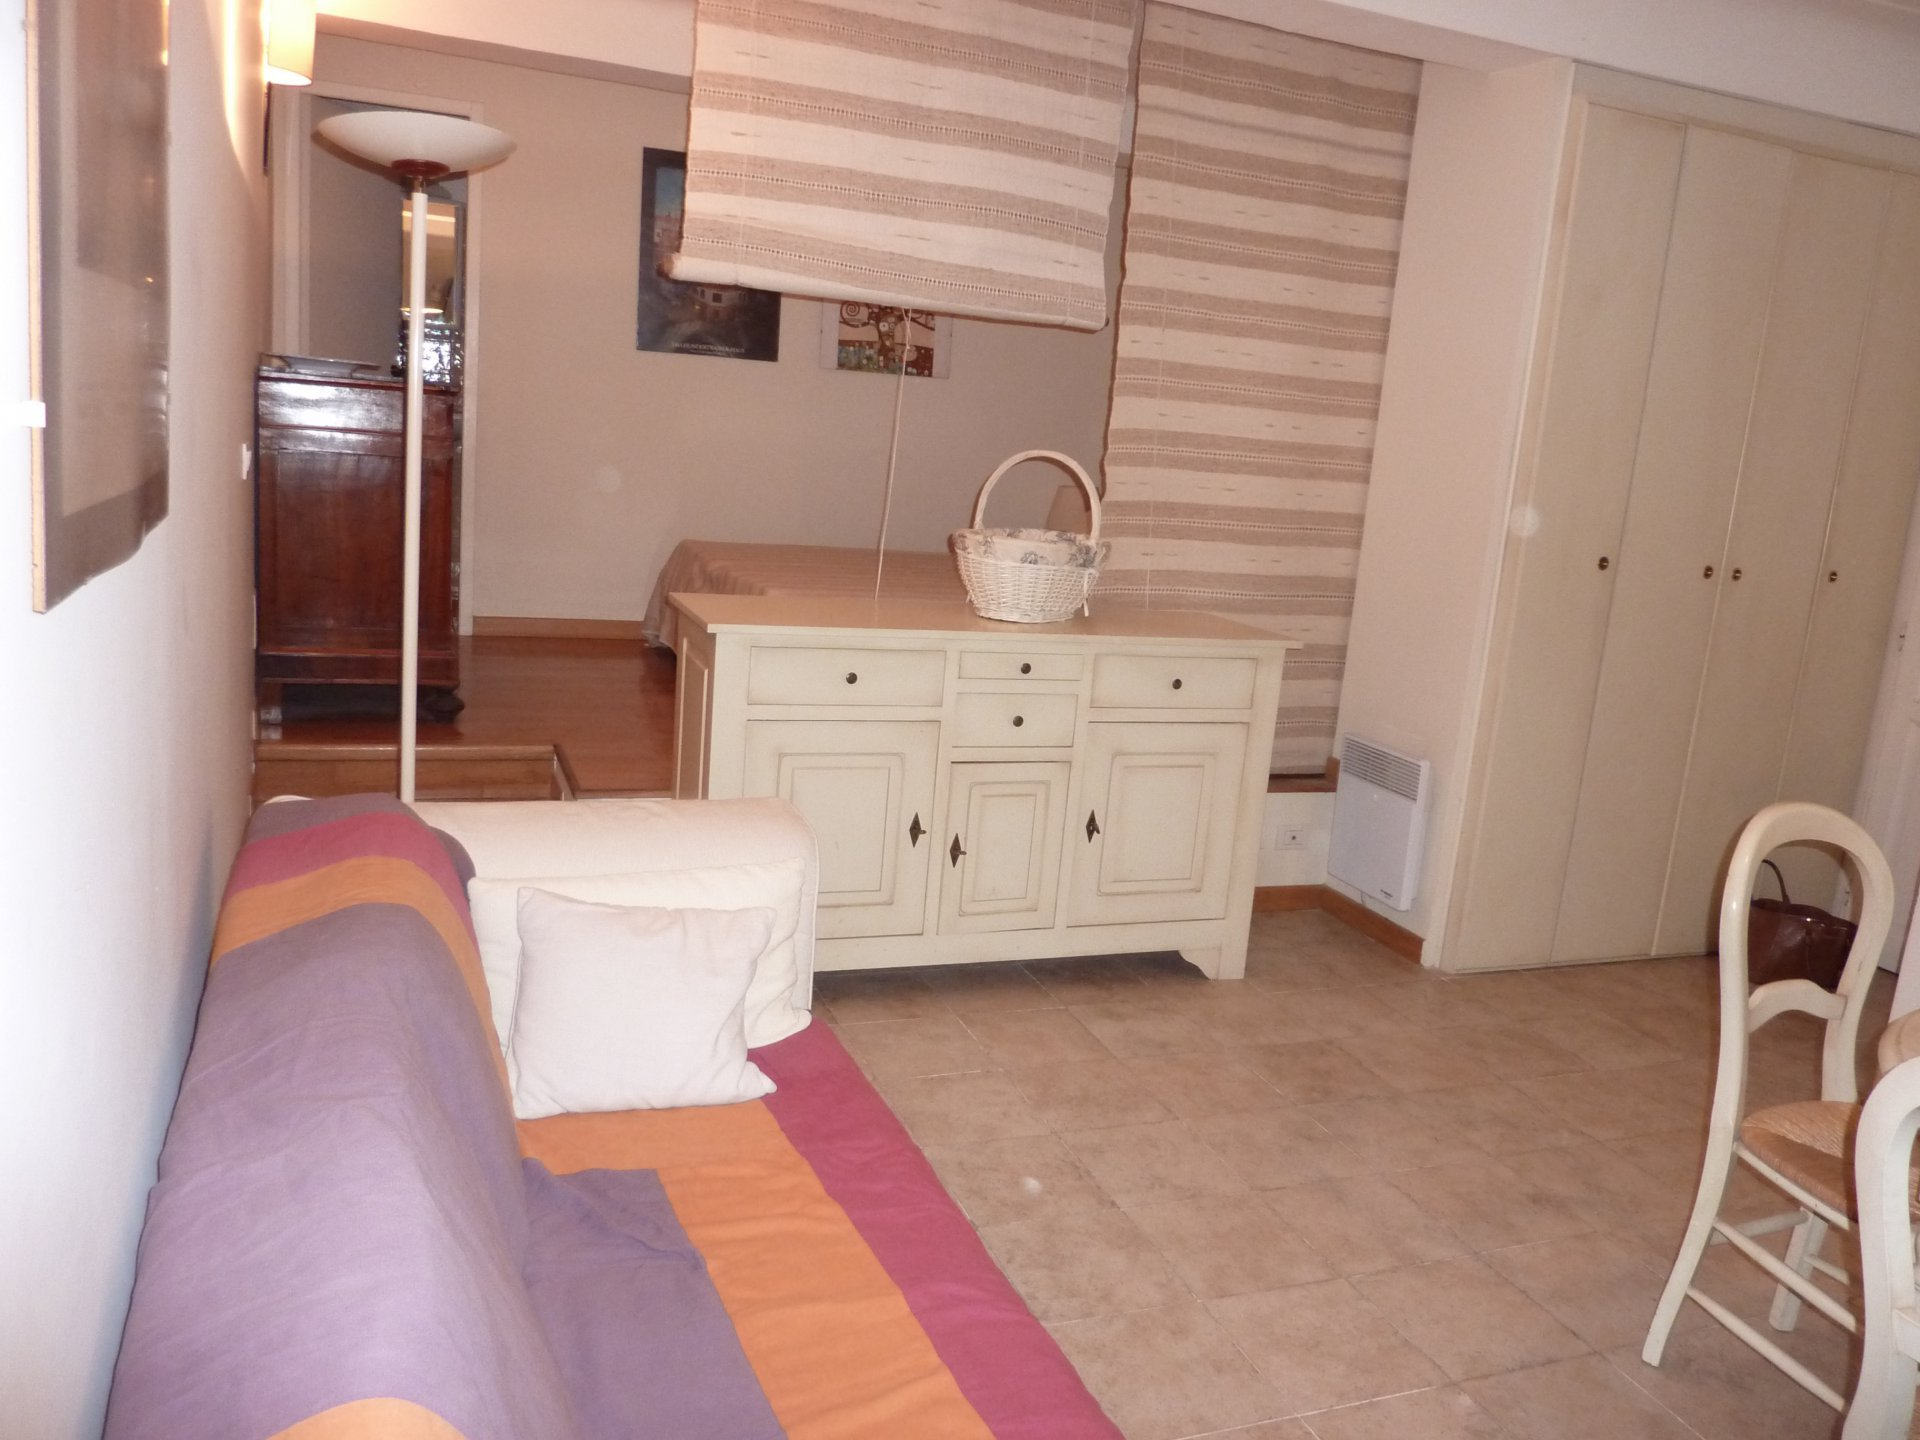 Antibes old town 1 bed apartment, 32 m2